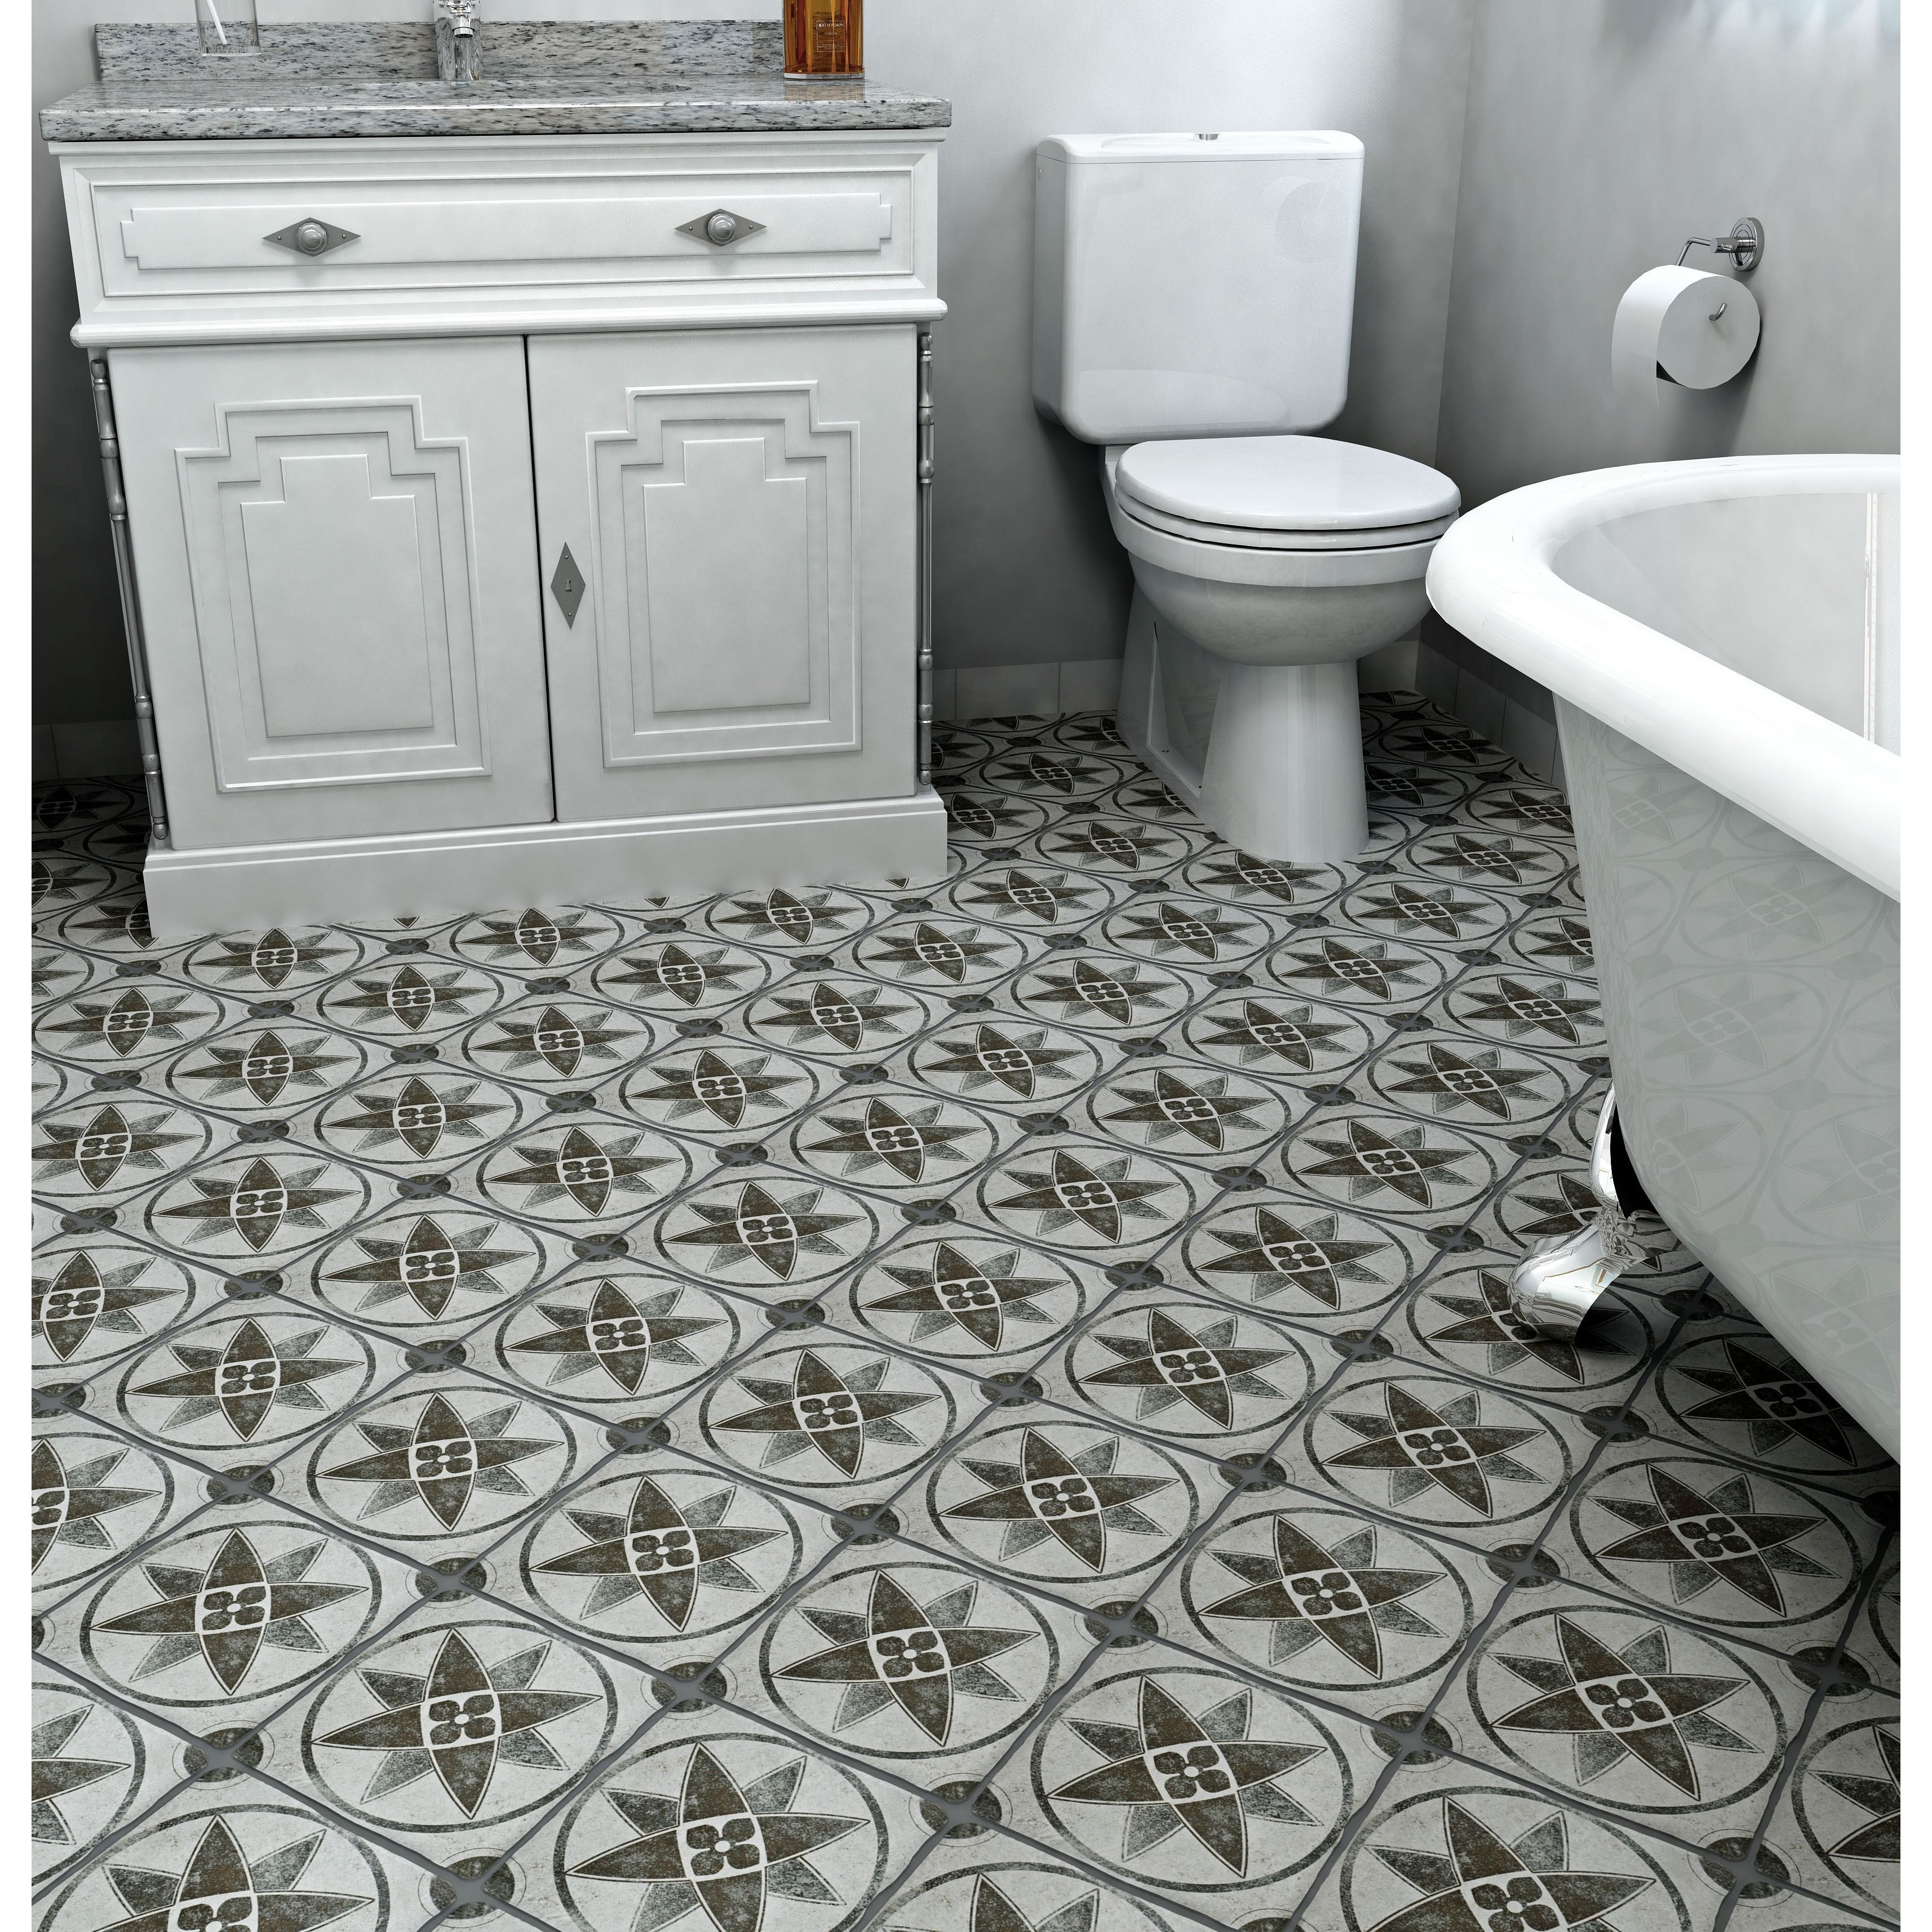 Printed floor tile home goods free shipping on orders over 45 at printed floor tile home goods free shipping on orders over 45 at overstock dailygadgetfo Images